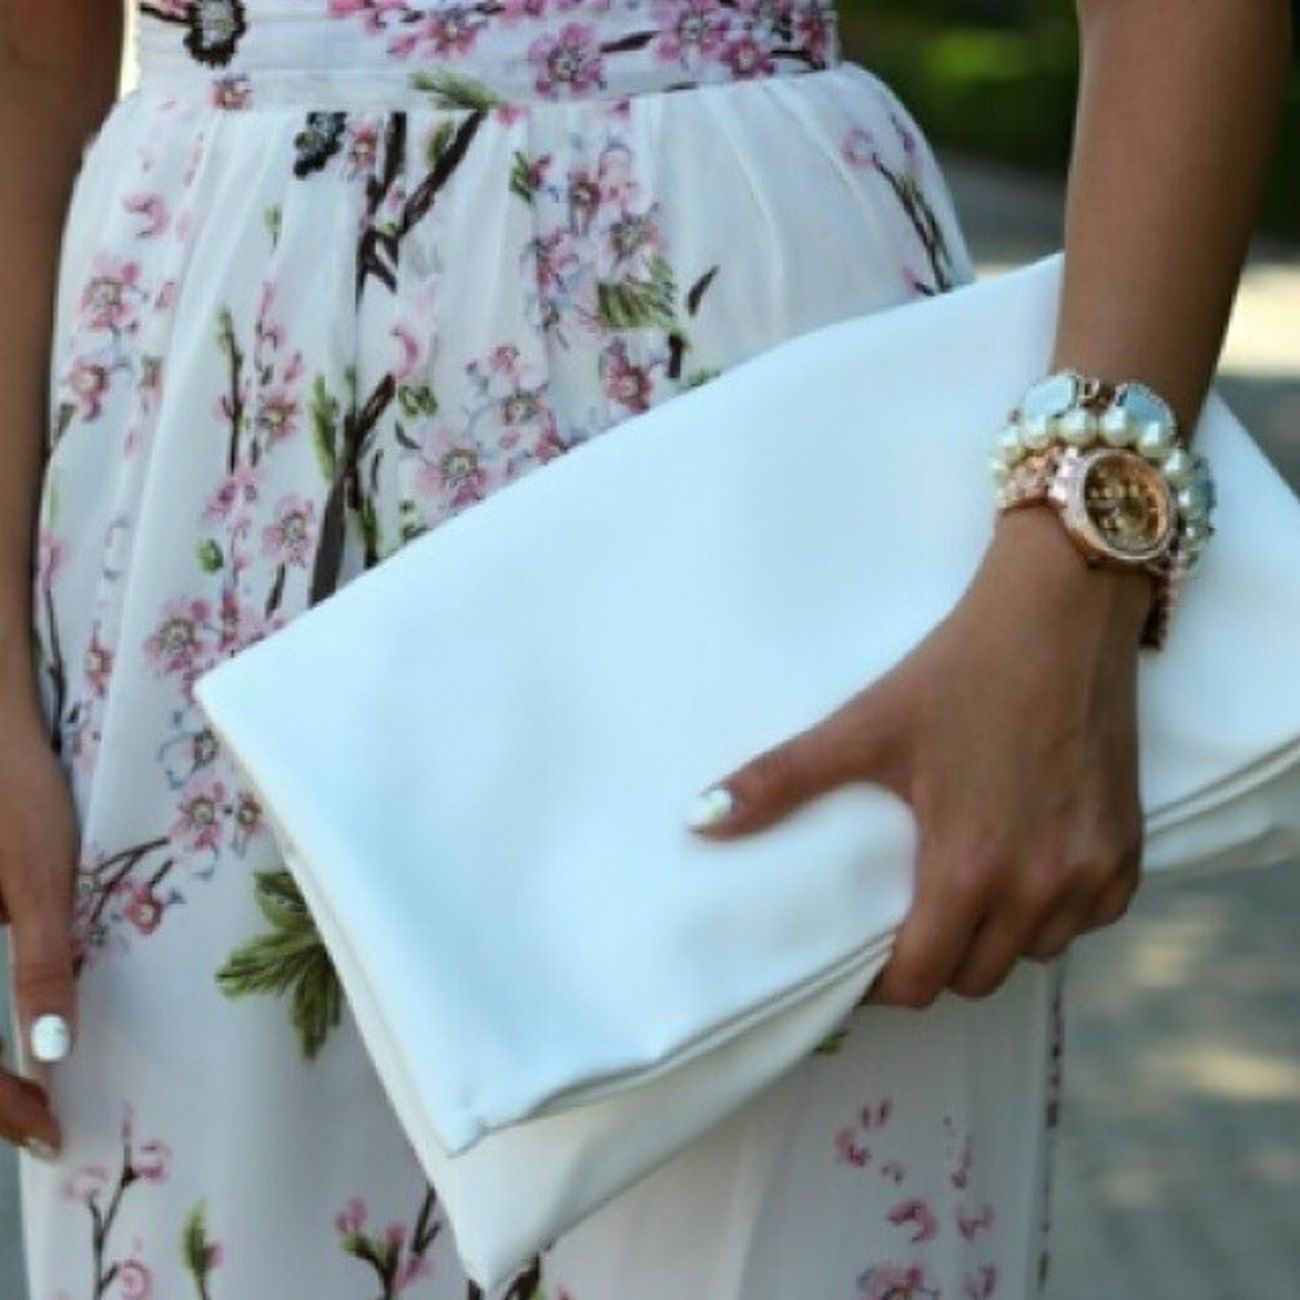 Fashionworkstv HowtoStyle Hotsummer Summerwear floralDress whitebag WhiteNailpolish nailart Jewelry pearlBracelet Bracelet GoldWatche luxurious photo tagsforlikes fashionworks5 smile